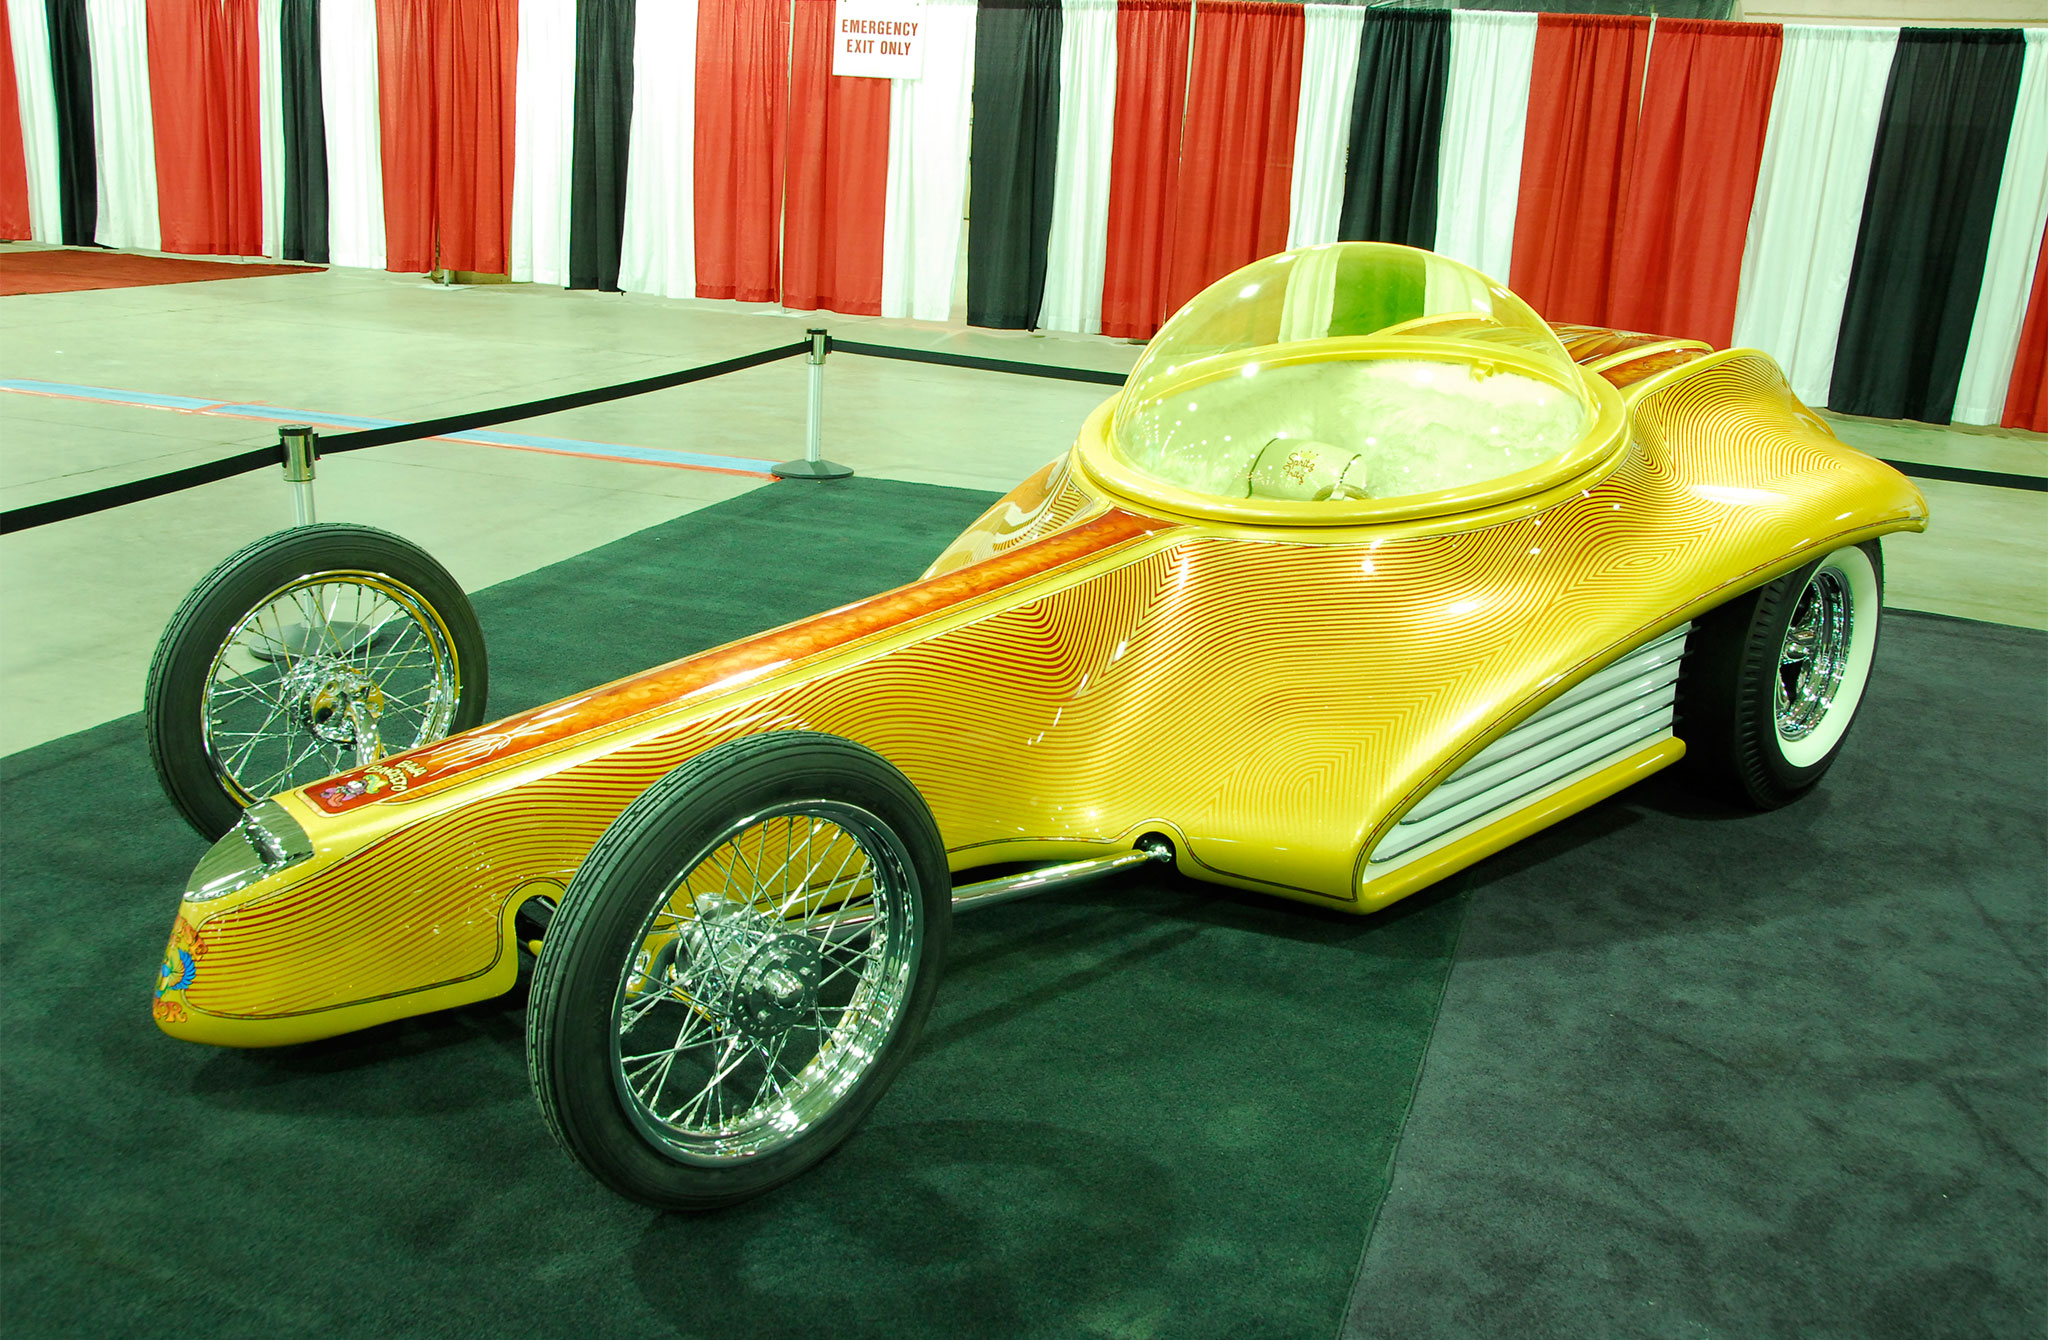 The Baja Bandeeto was the latest bubbletop from Fritz Schenck, featuring a custom-made fiberglass body over a handmade chassis and a dazzling one-off paint scheme.